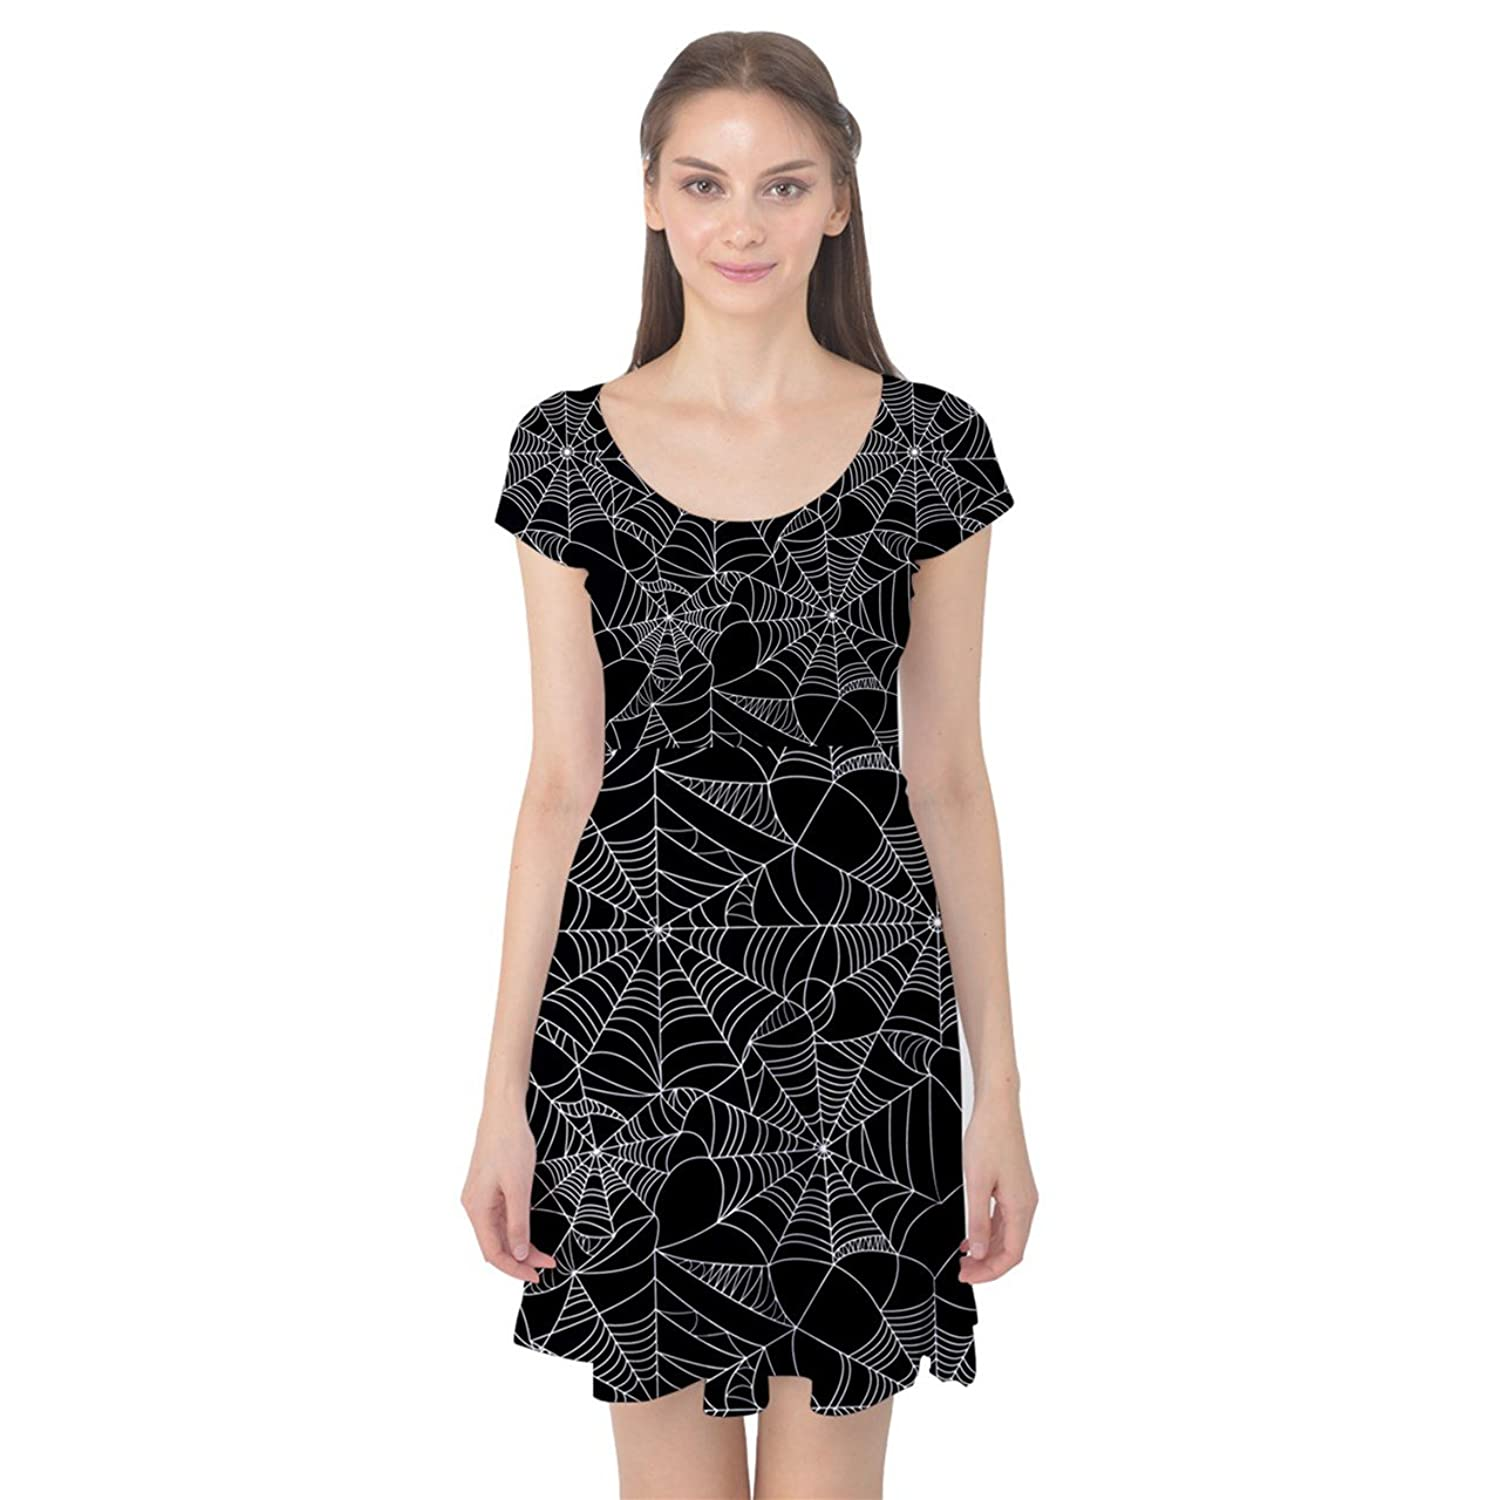 Vintage Retro Halloween Themed Clothing  Black Halloween Spider Web Pattern Cap Sleeve Dress  AT vintagedancer.com